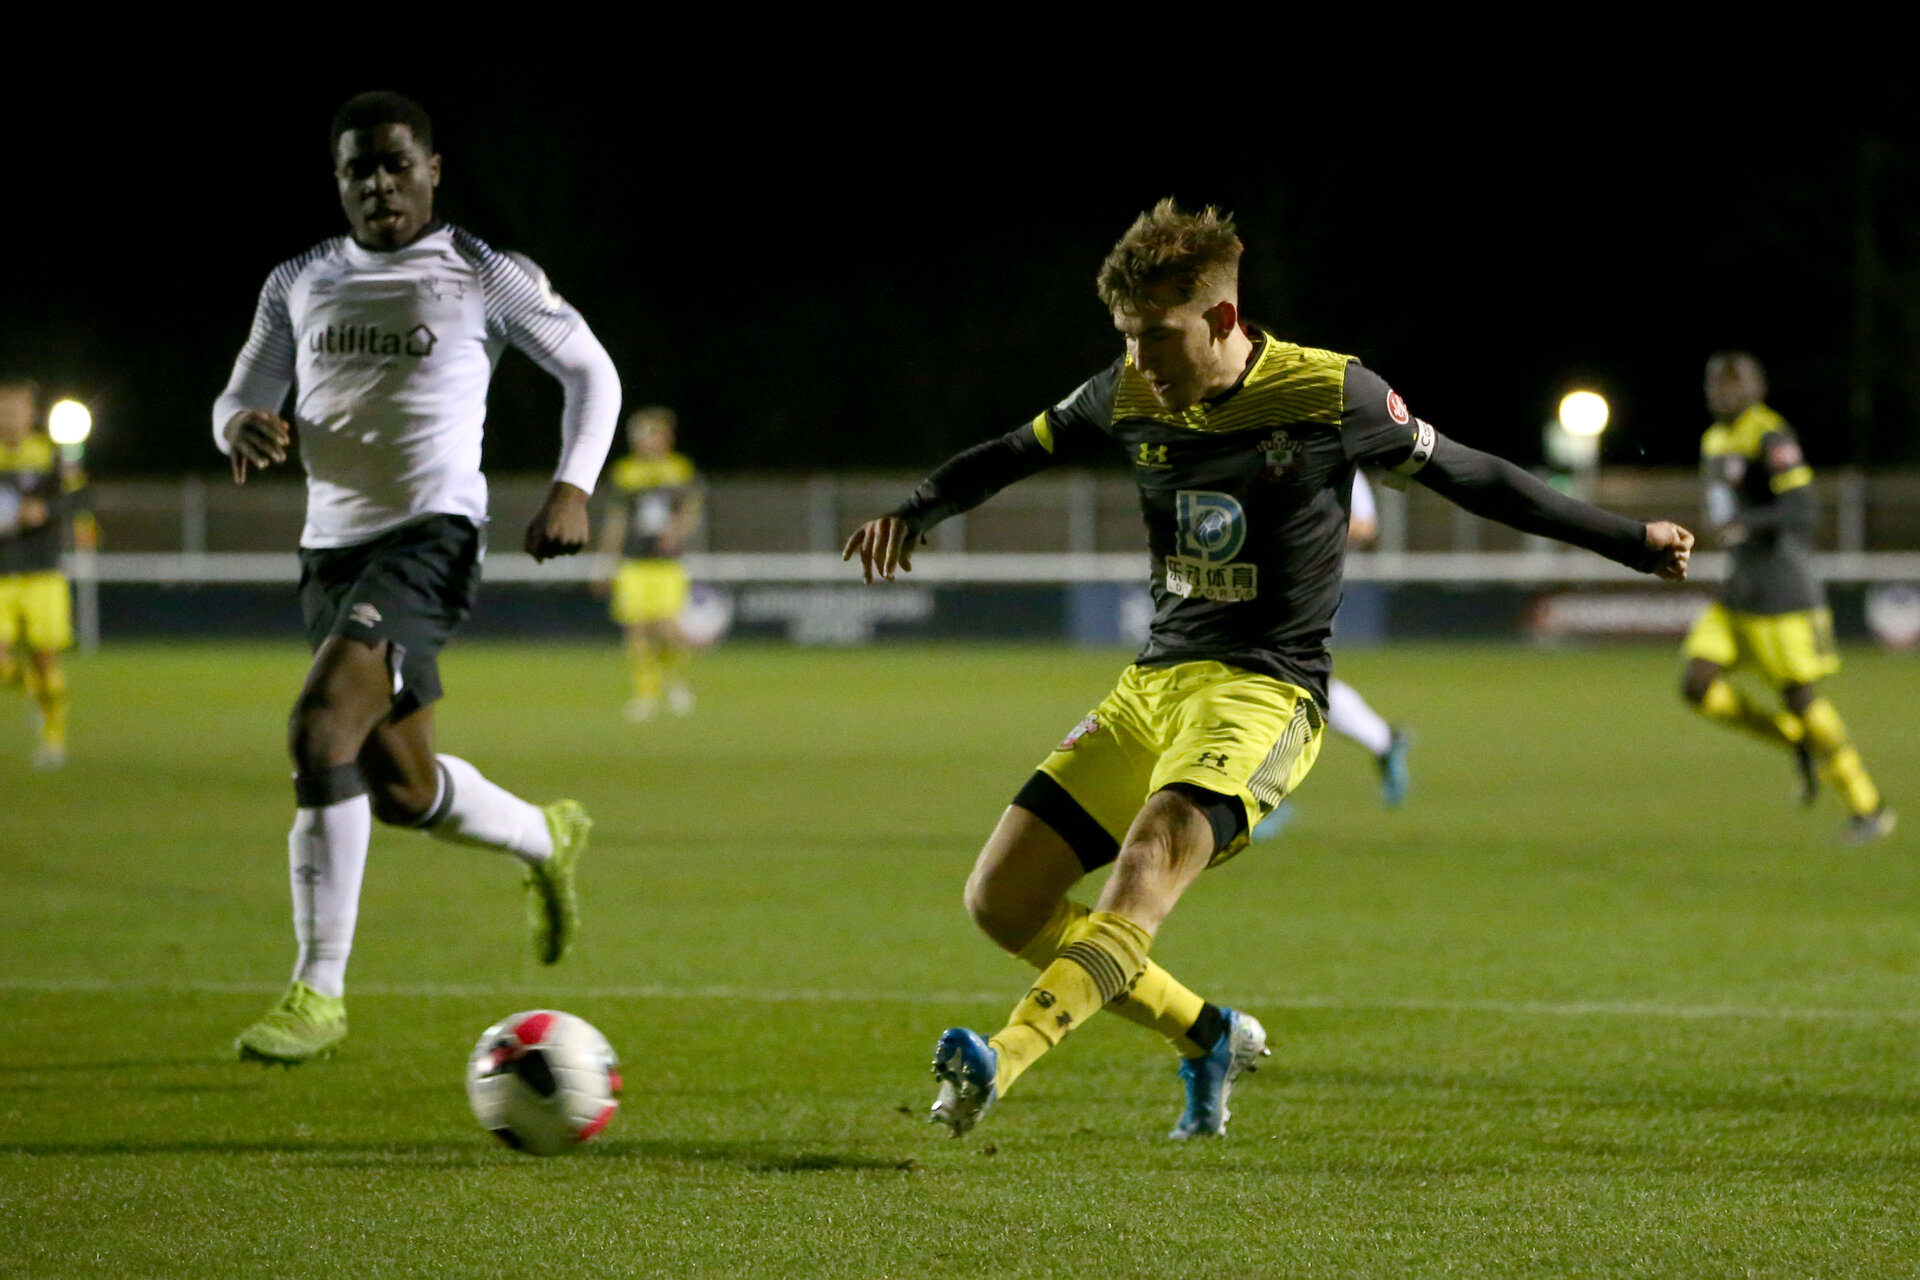 LOUGHBOUROUGH, ENGLAND - DECEMBER 10: of Southampton U23. during Premier League International Cup match between Derby County and Southampton at Loughborough University Stadium on December 10 2019 in Loughborough, England (Photo by Isabelle Field/Southampton FC via Getty Images)